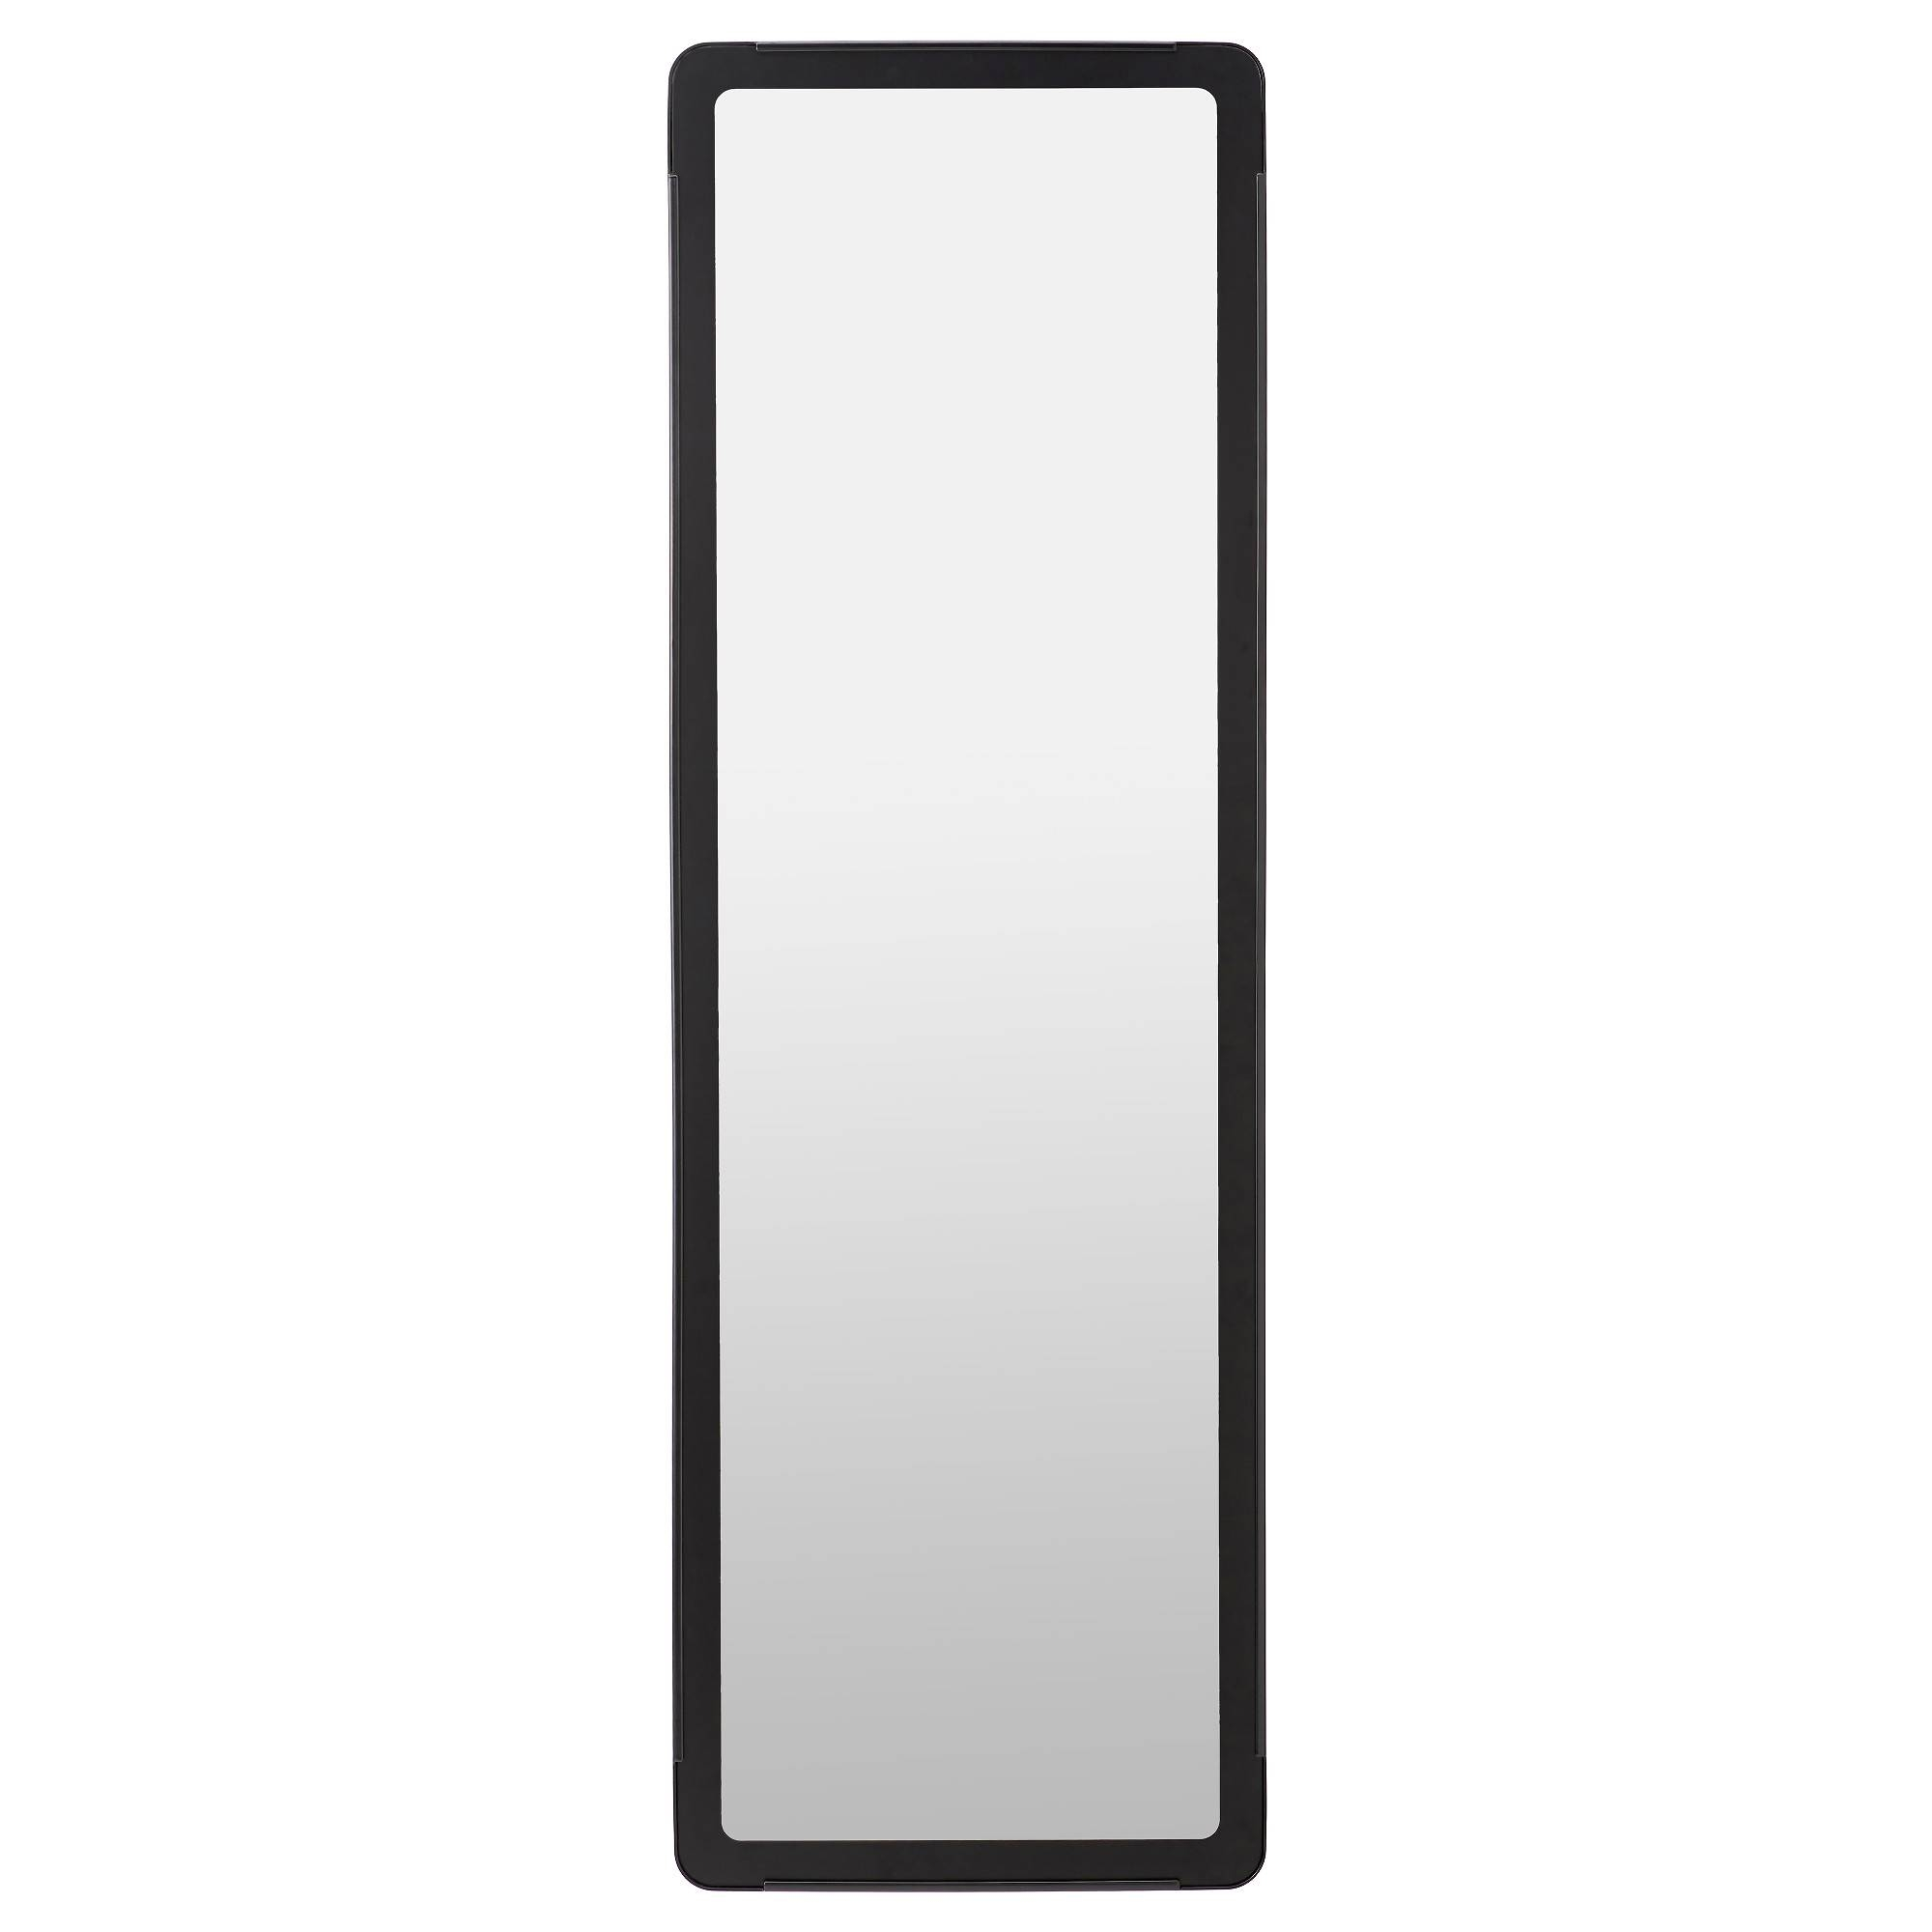 Full-Length Mirrors - Ikea intended for Big Silver Mirrors (Image 16 of 25)